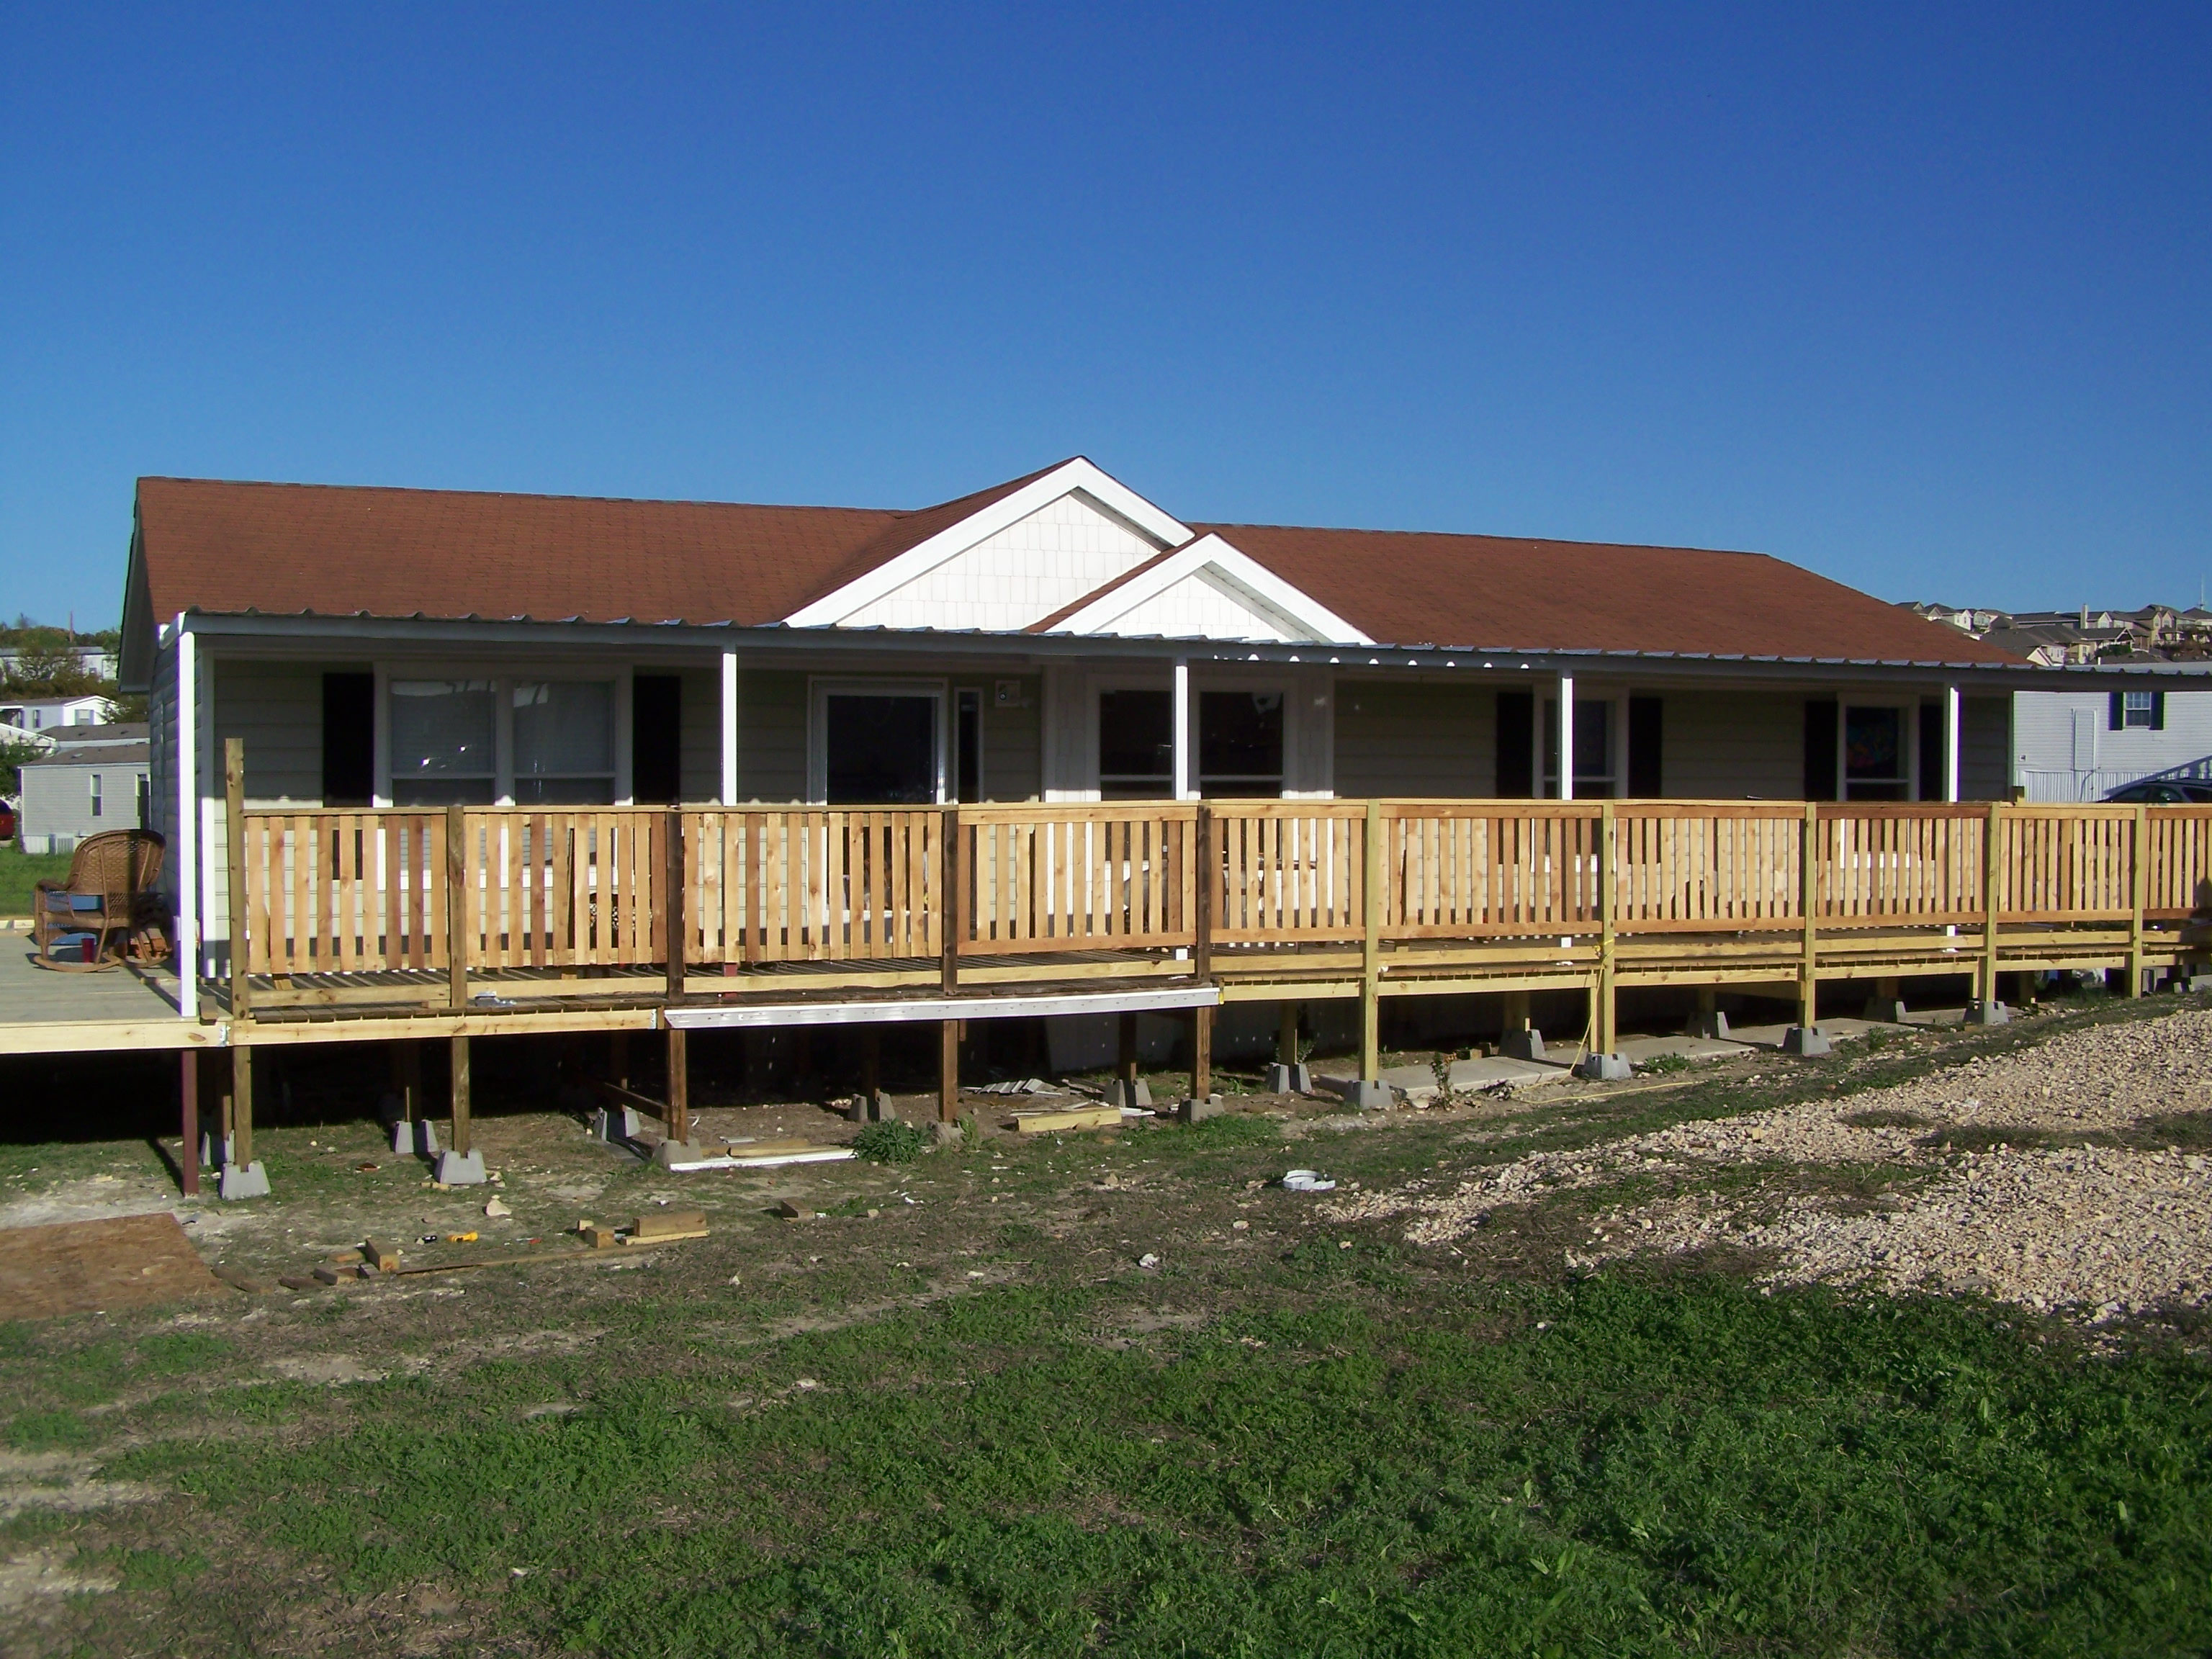 Portable Awnings For Decks : Custom deck steel awning attached to manufactured home